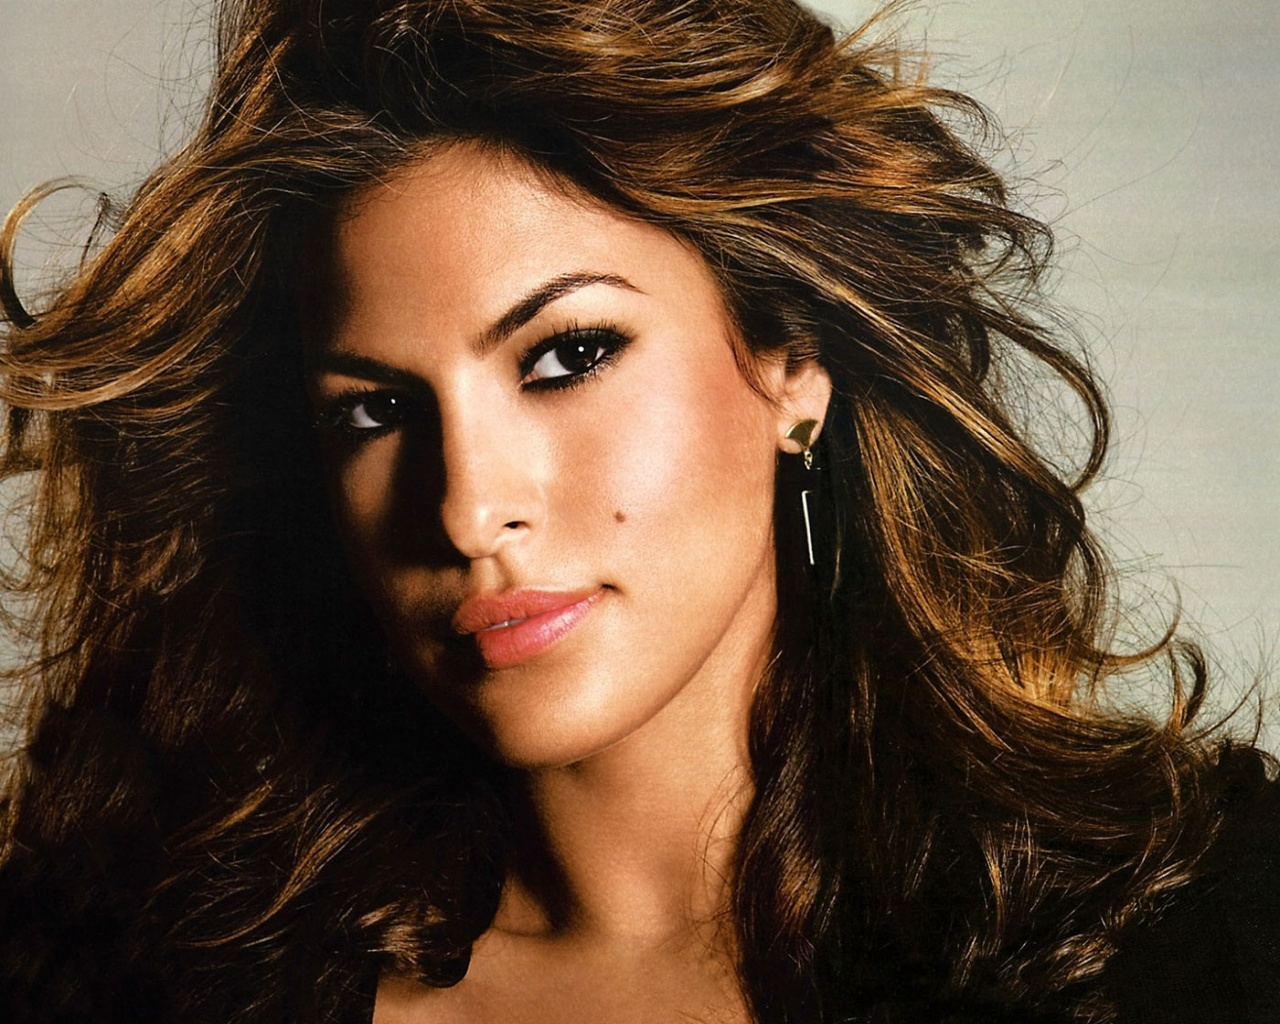 eva mendes wallpapers hd A3